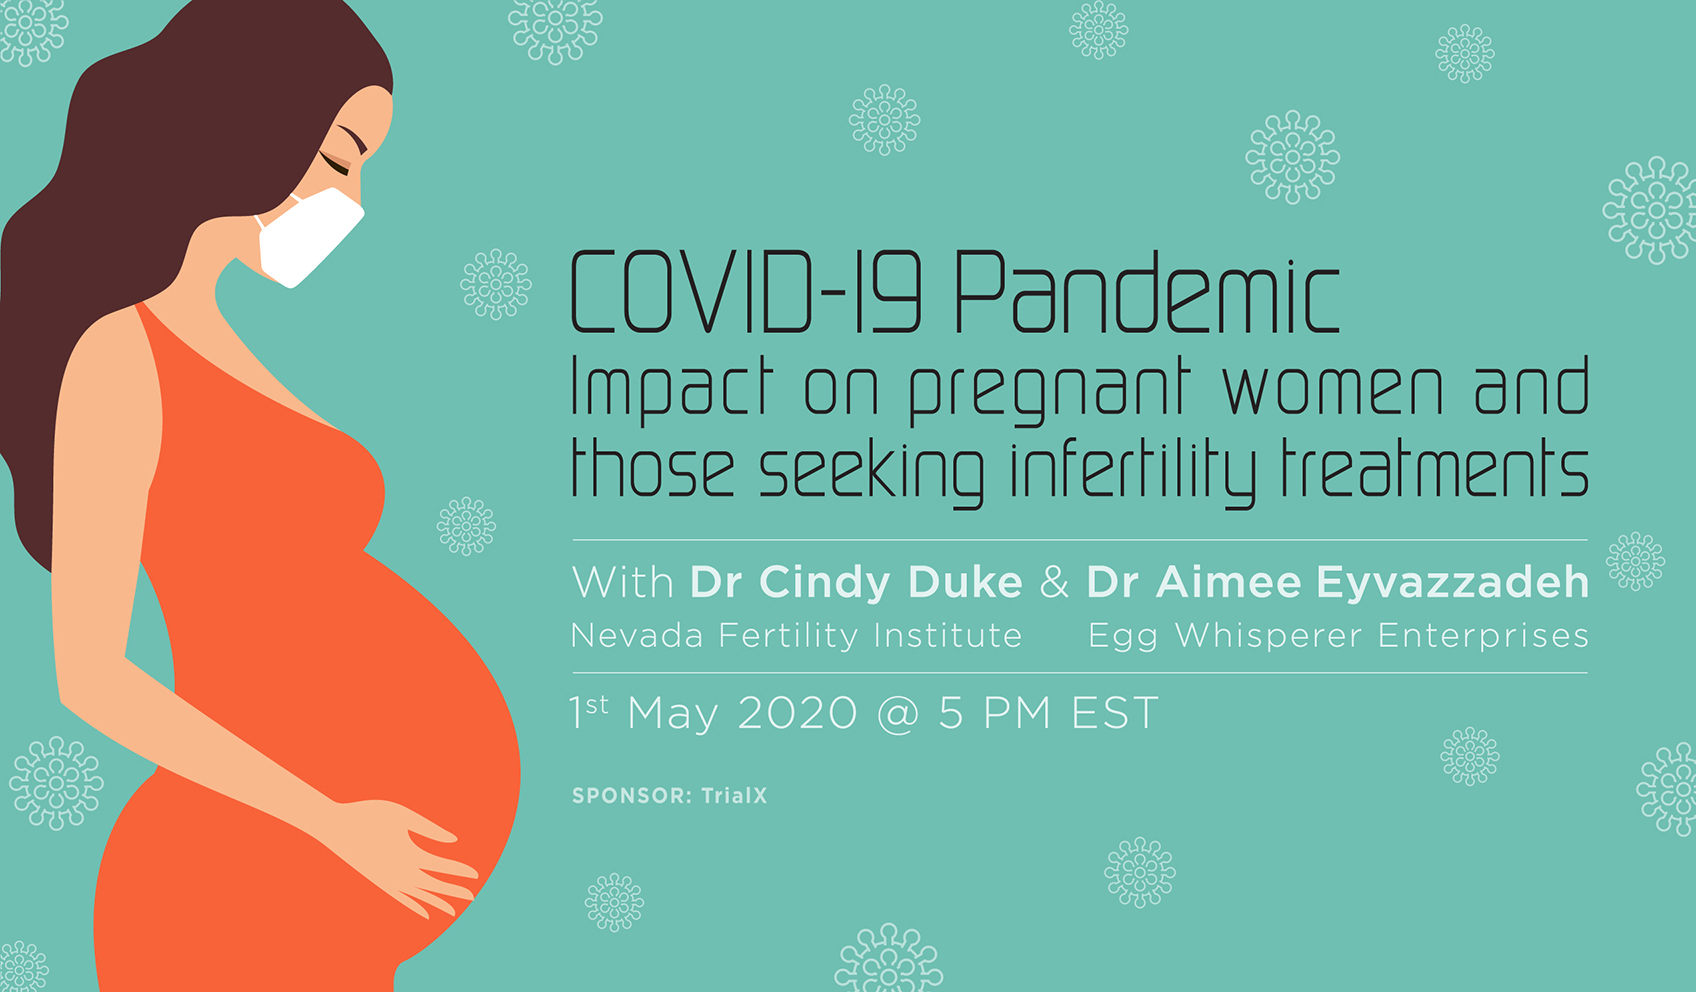 COVID19 Pandemic – Impact on Pregnant Women and Those Seeking Infertility Treatments